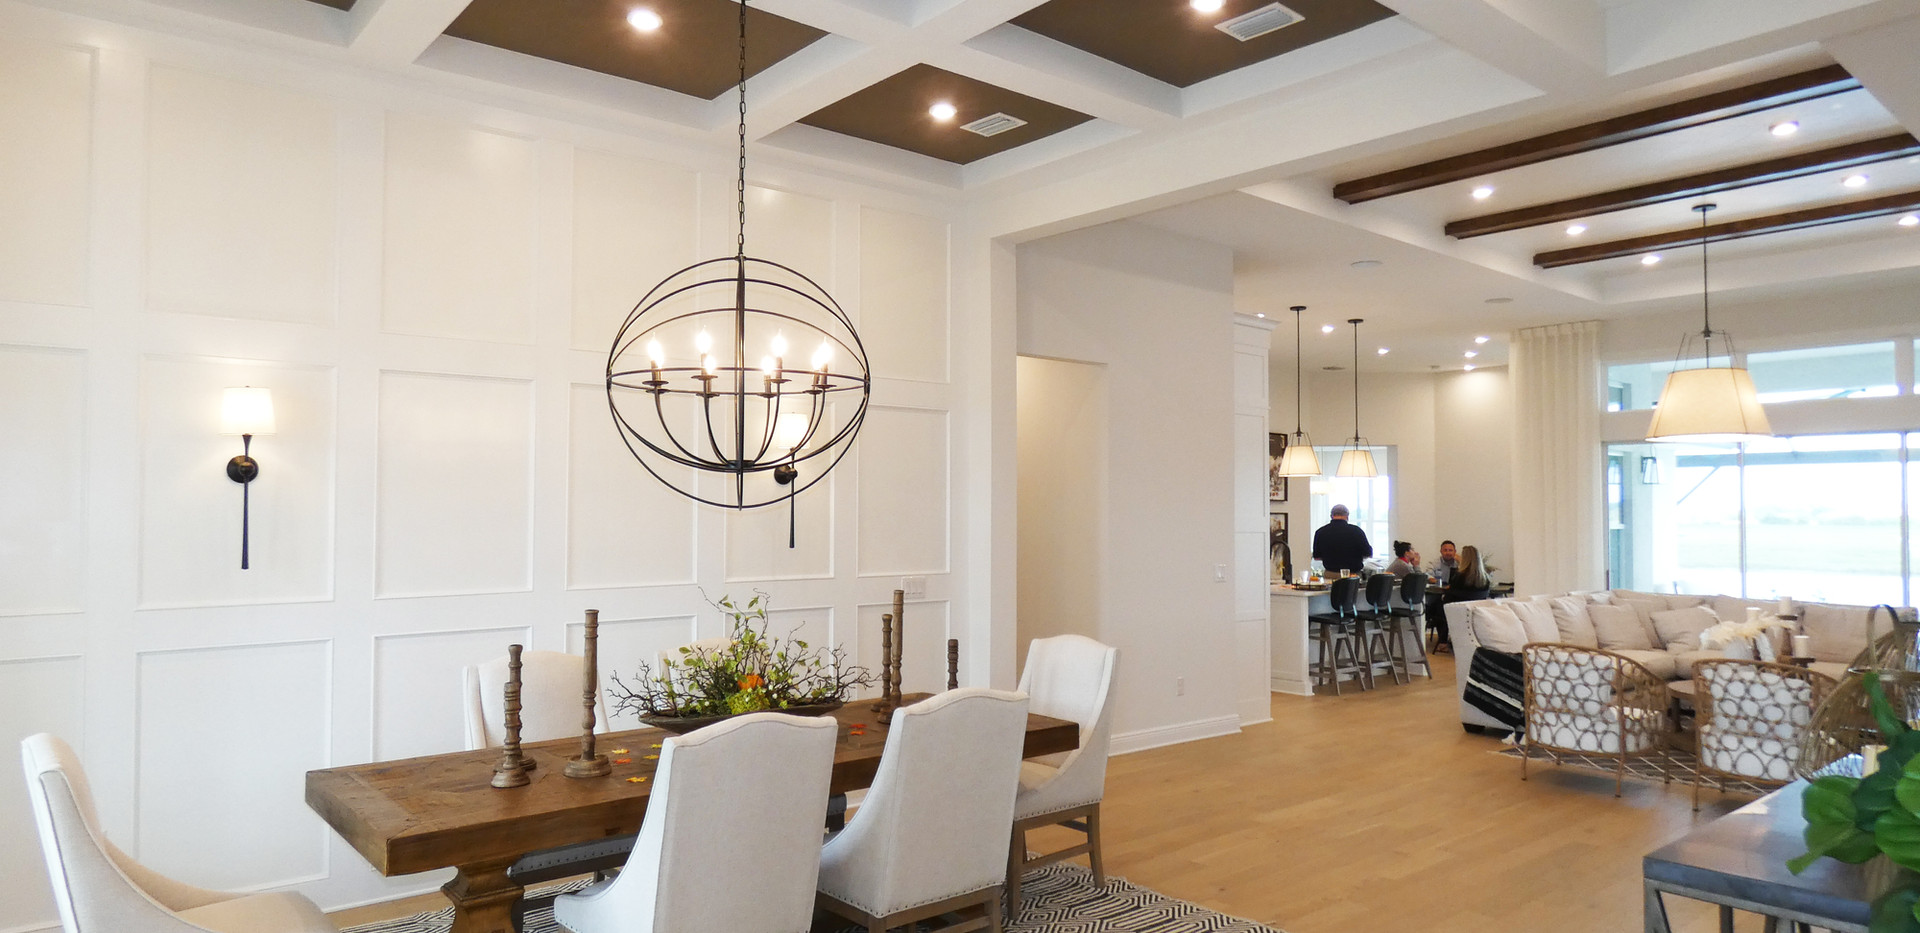 Formal dining in Cardel Homes Worthingto